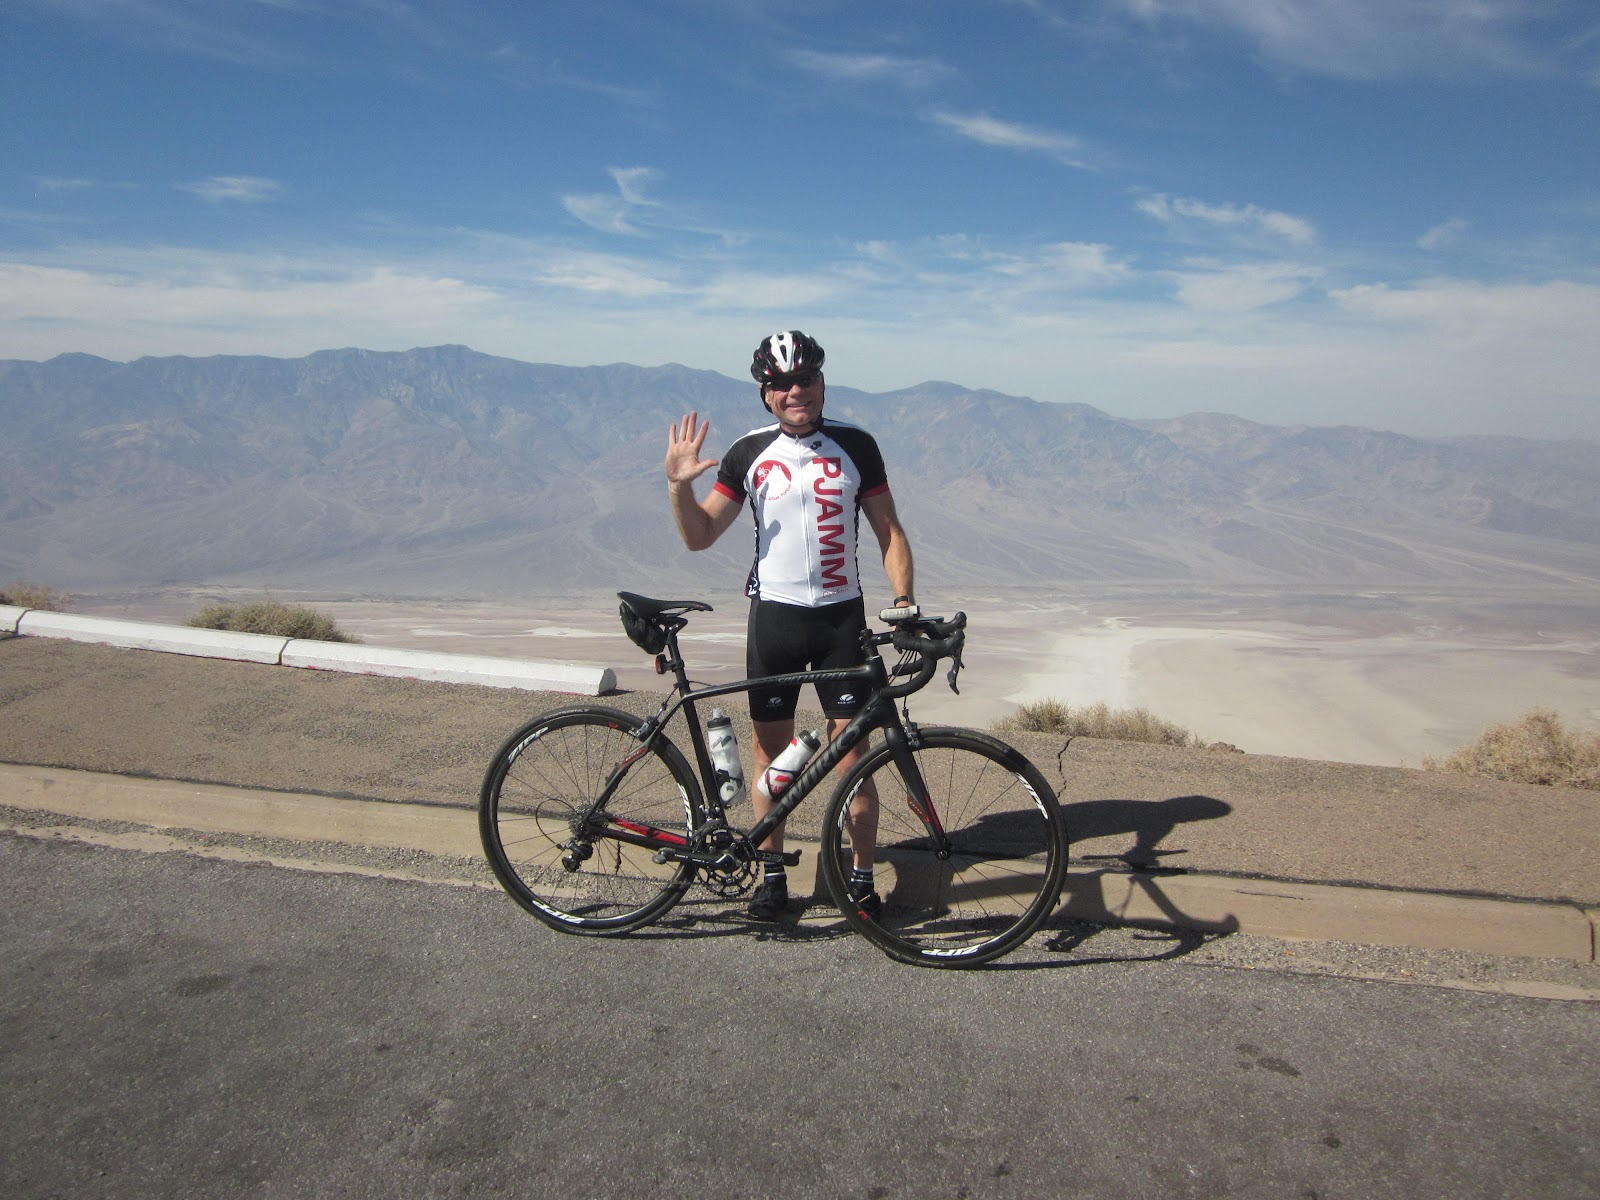 Climbing by bike Dantes View Death Valley - cyclist at Dantes View with Badwater in background